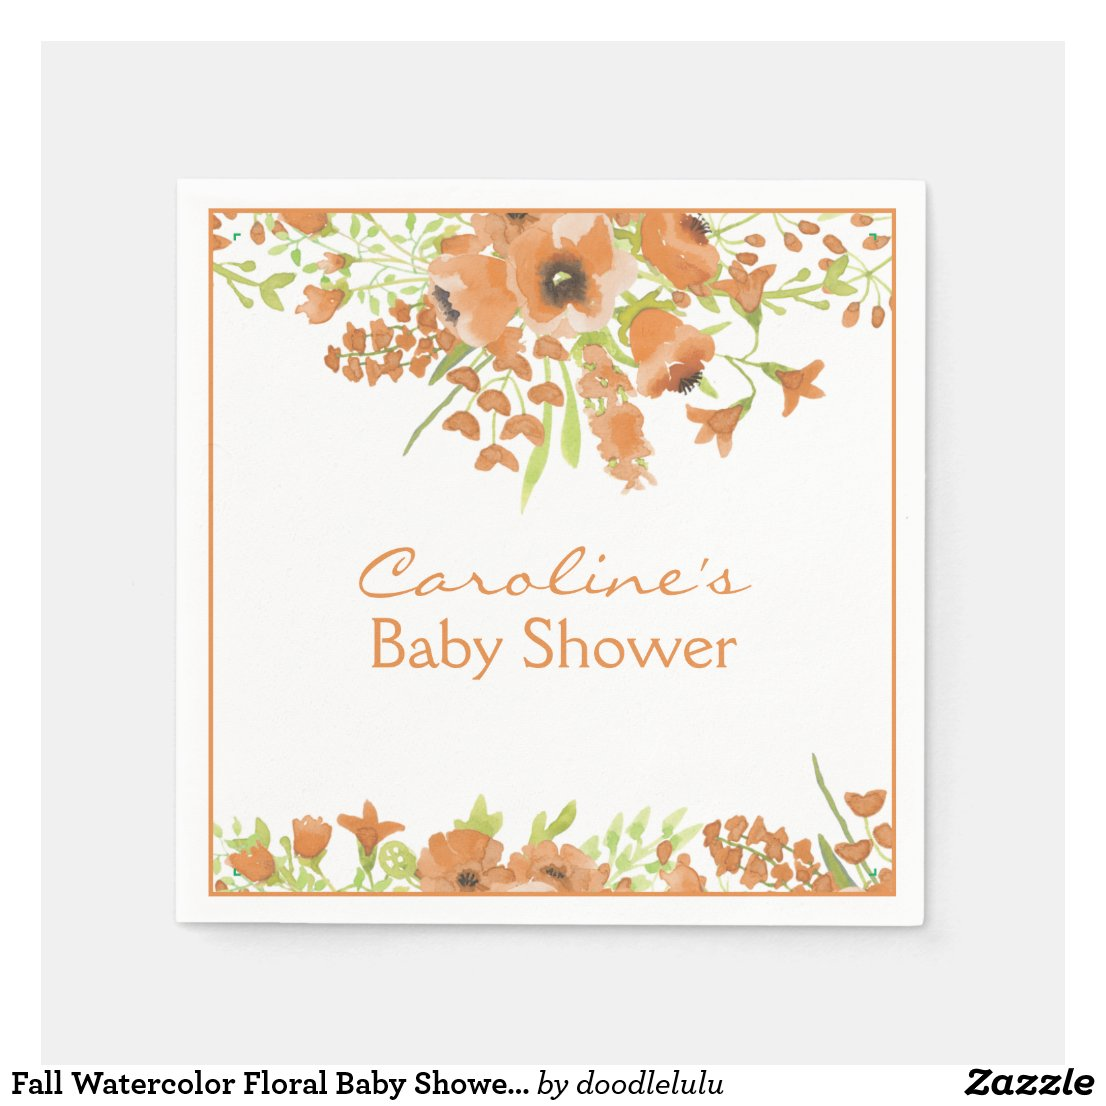 Fall Watercolor Floral Baby Shower Napkin